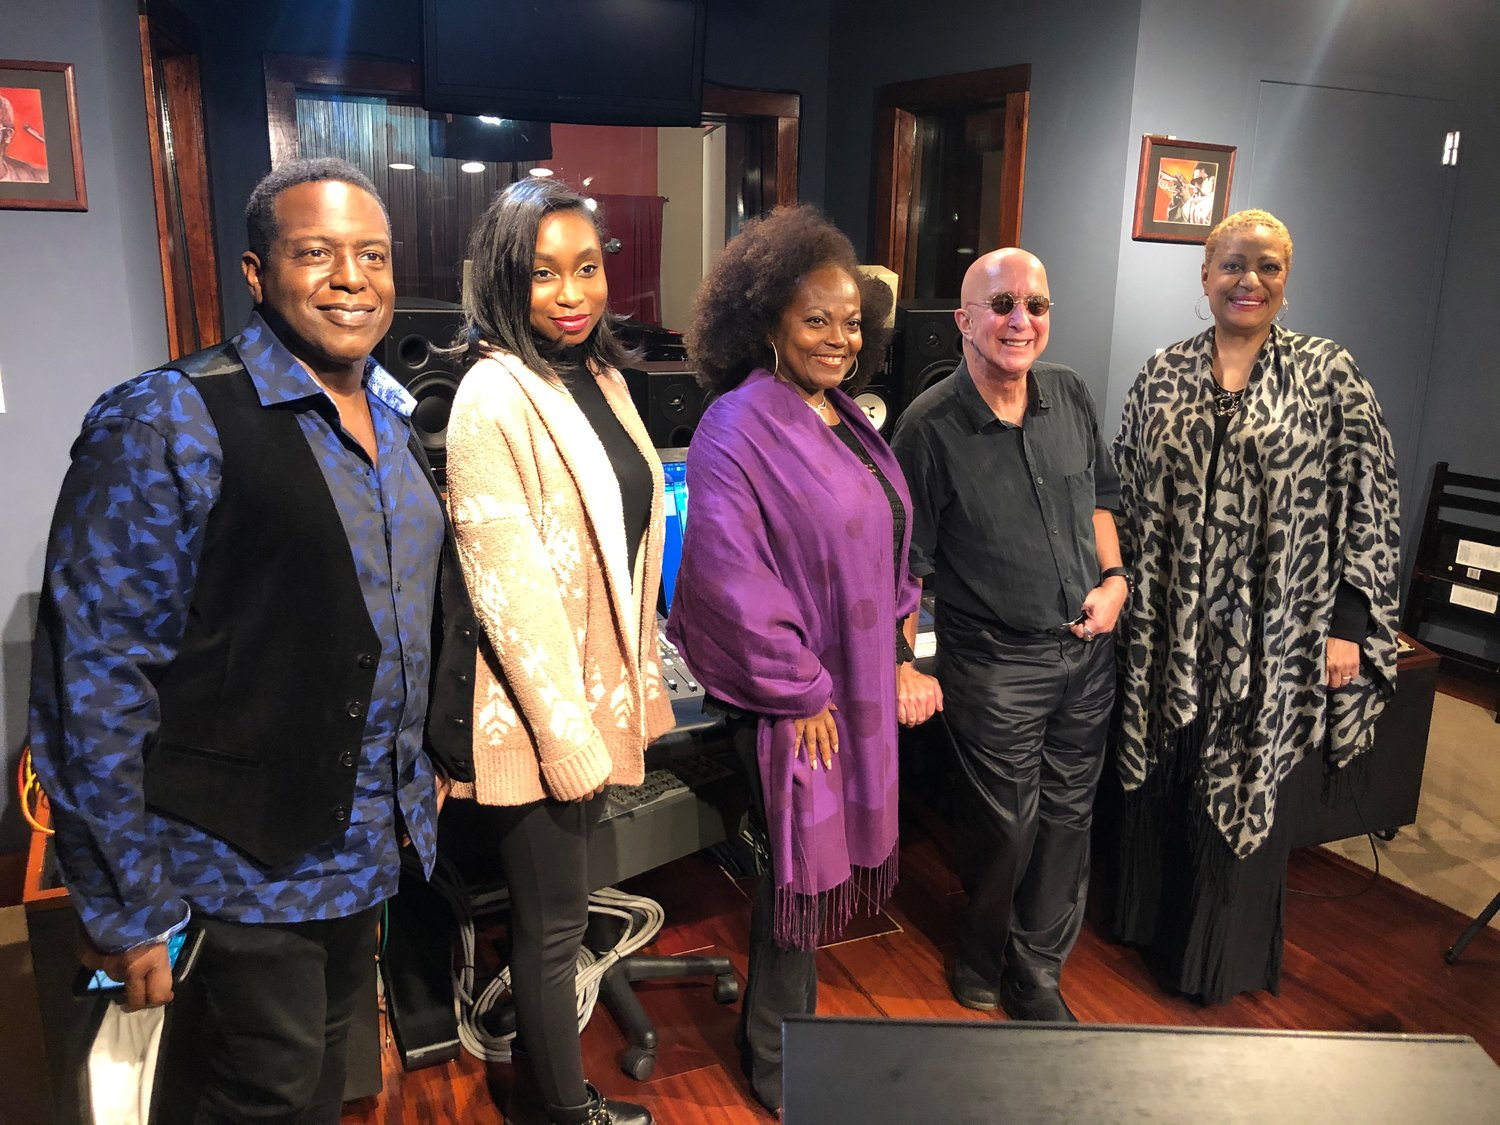 Dennis Collins, Molloy College student Nichelle Lewis, Sharon Jerry-Collins, Paul Shaffer and Vanesse Thomas.